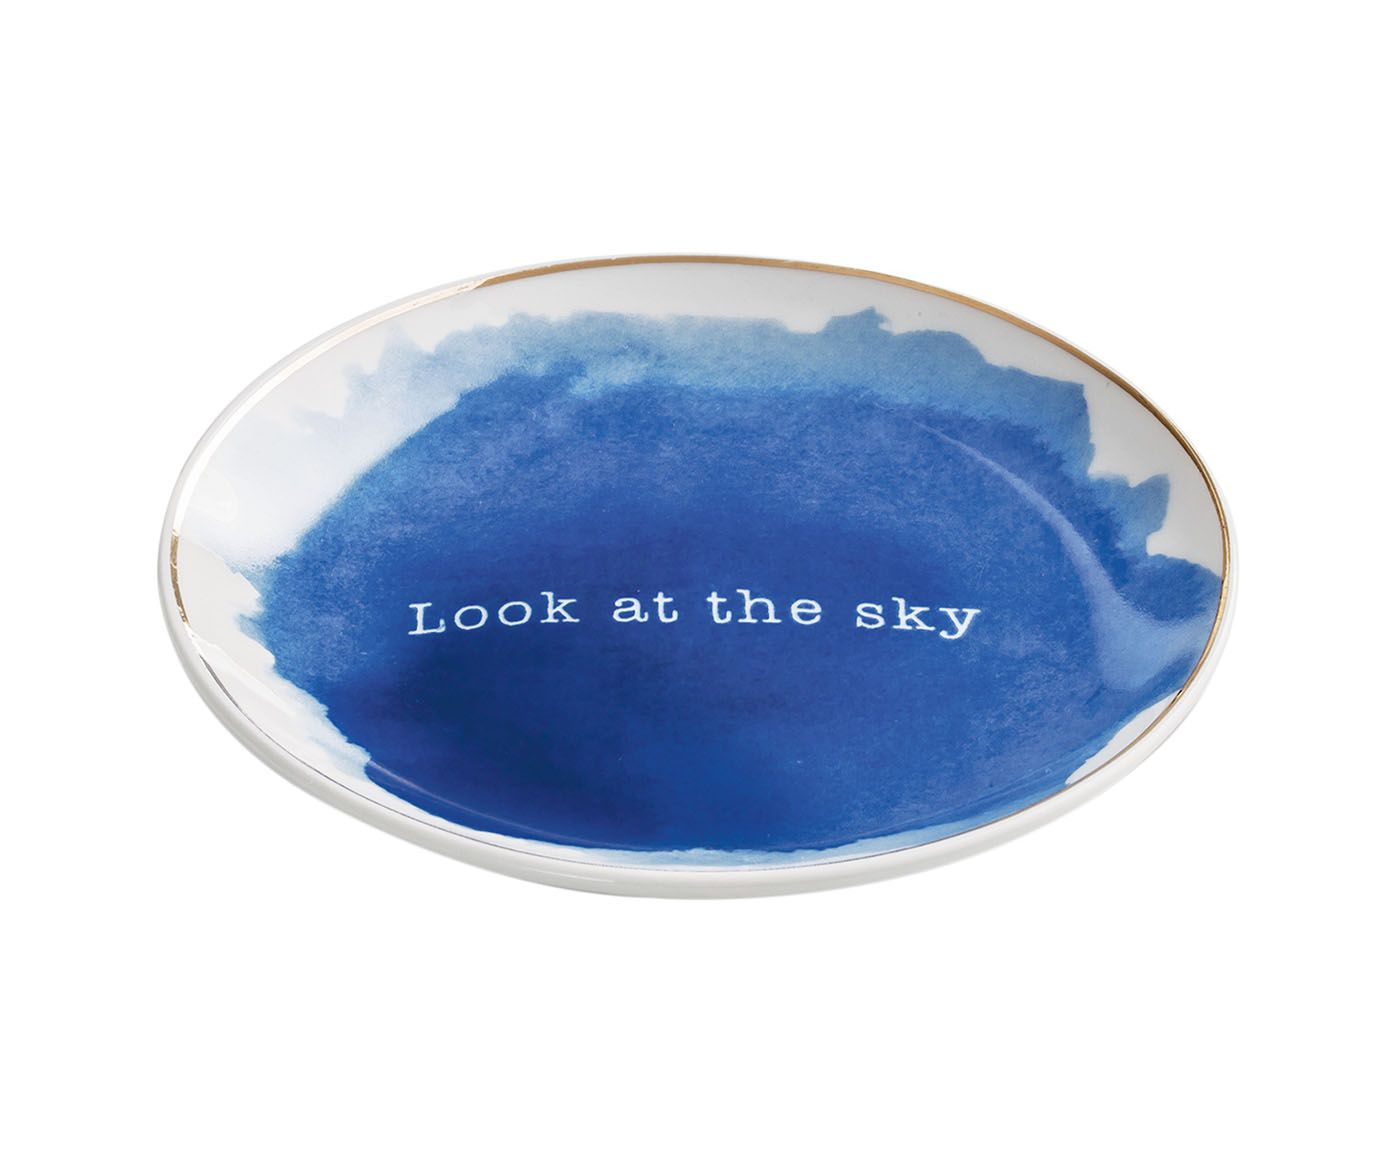 Prato Decorativo Look At The Sky - 12,5cm | Westwing.com.br